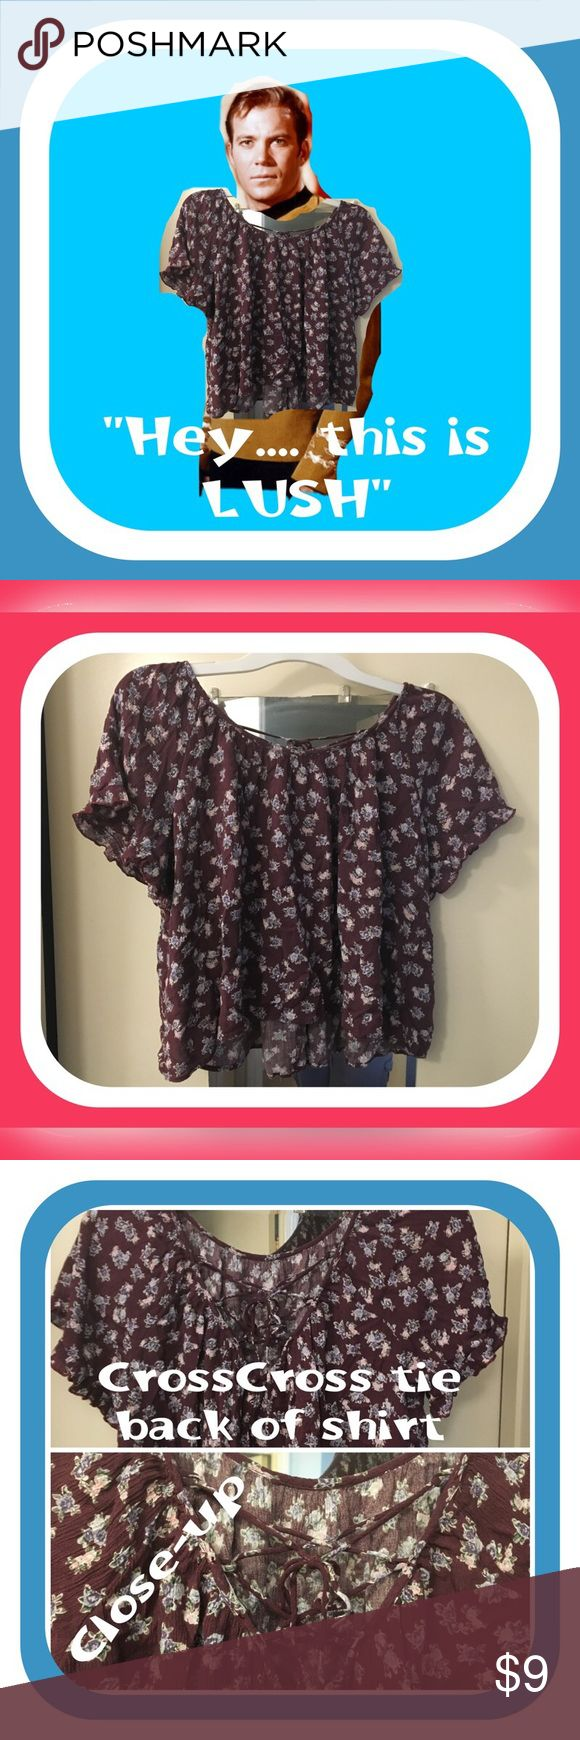 💥💥 BOGO SALE 💥💥 $10 & Under items only ❤️❤️❤️❤️❤️ LUUUUUUUSSSSHH ❤️❤️❤️❤️ adorable flower print top.  Back has straps that crisscrodd and tie.  Length hits about the waist.  💥Don't Forget to BOGO 💥💥  💥💥$10 & Under 💥💥 (Free item must be of equal or lesser Value) Lush Tops Blouses